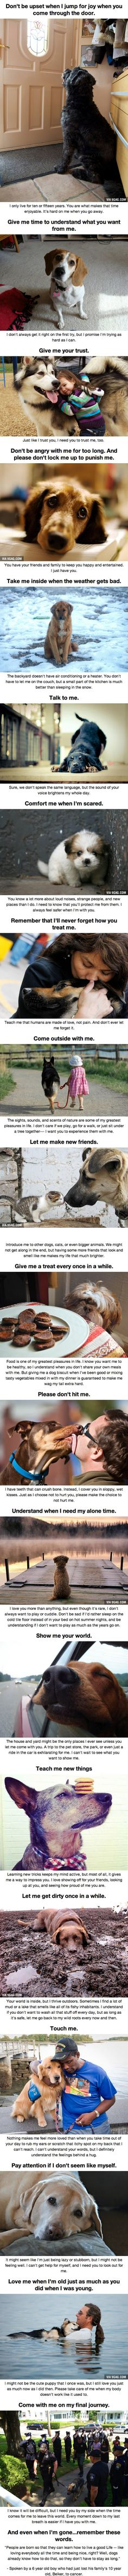 The 20 Important Facts Dog Lovers Must Never Forget...excuse me while I cry forever.